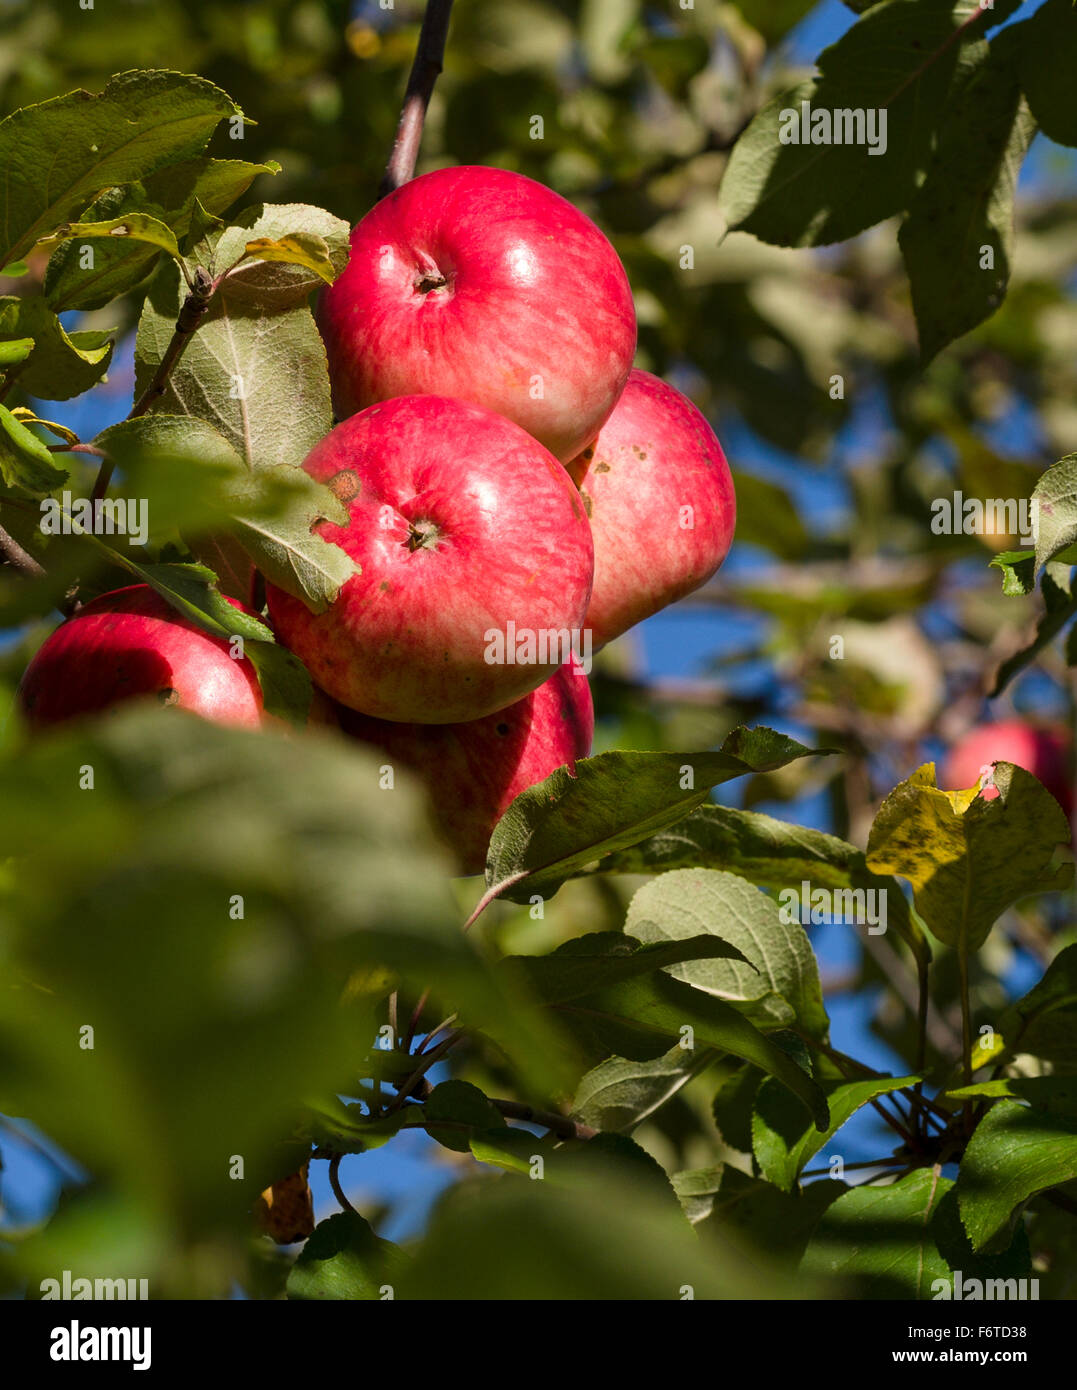 Ripe Red apples, with a bit of scab. A cluster of red apples on an abandoned orchard tree with a little disease - Stock Image